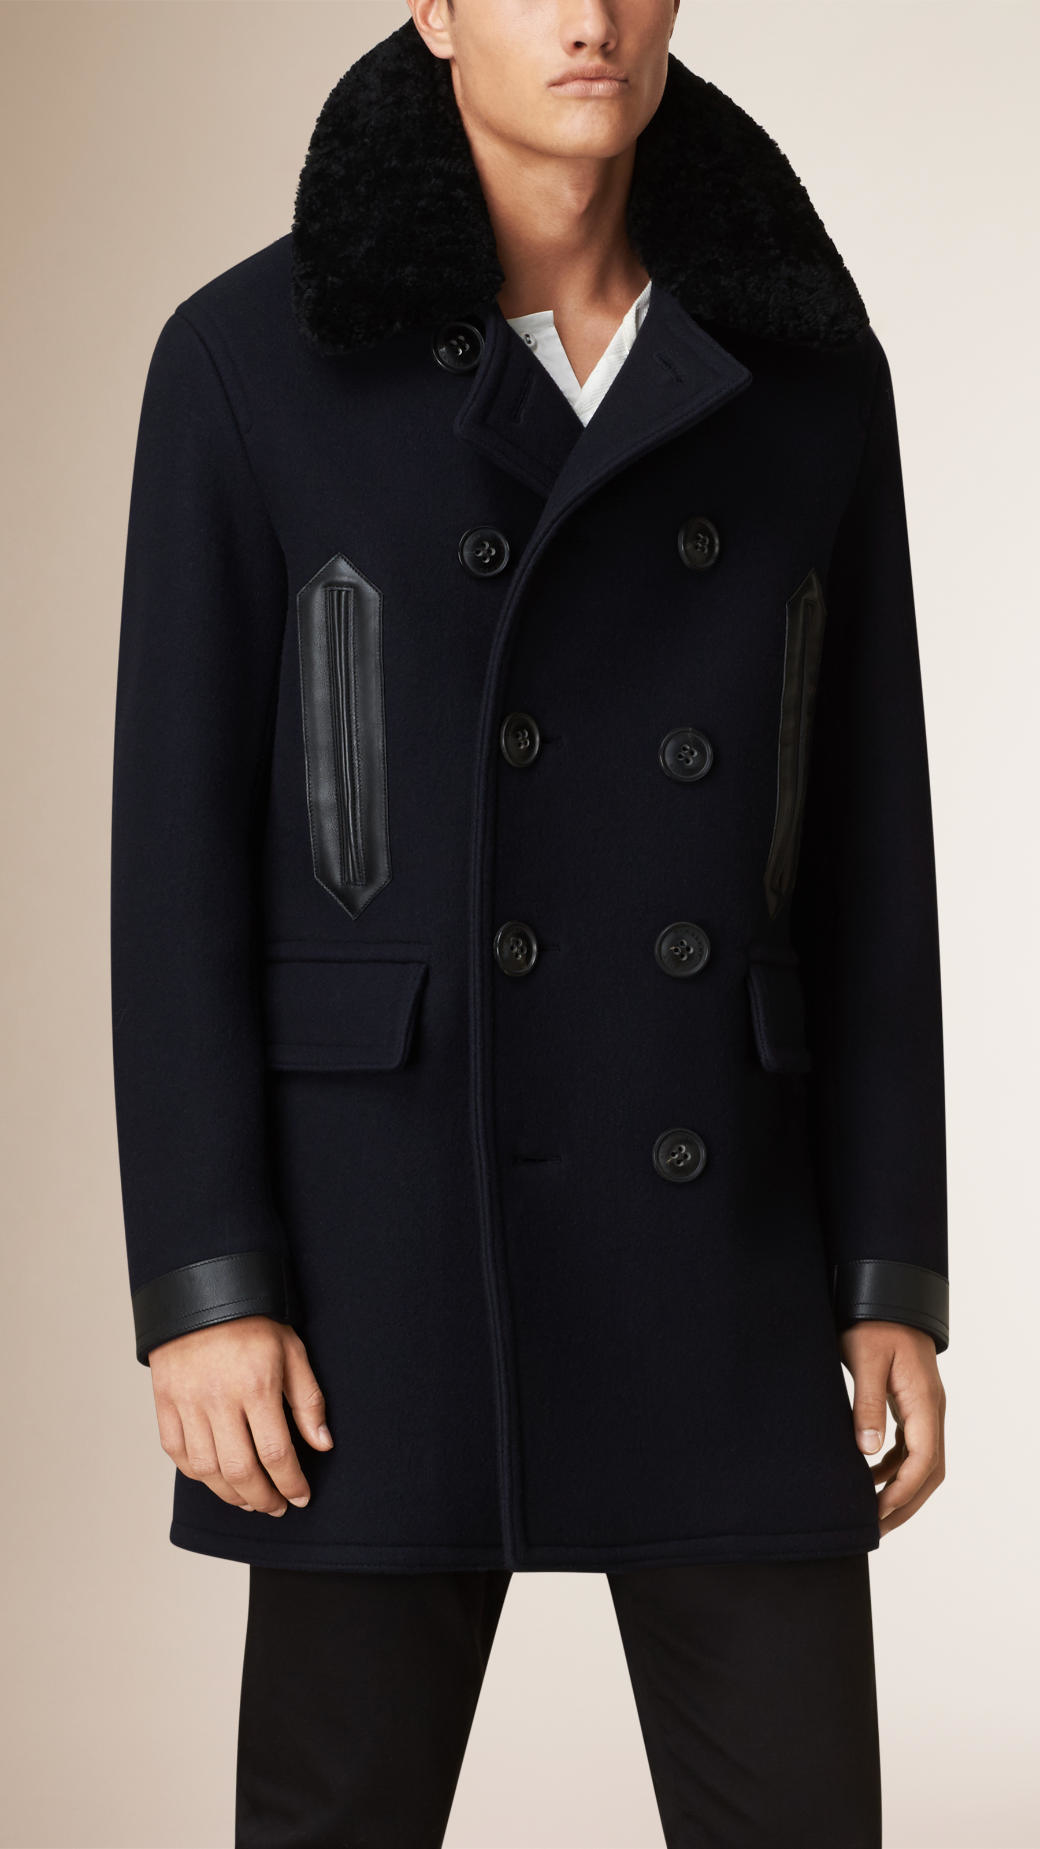 Navy Blue Pea Coat With Red Trim - Tradingbasis